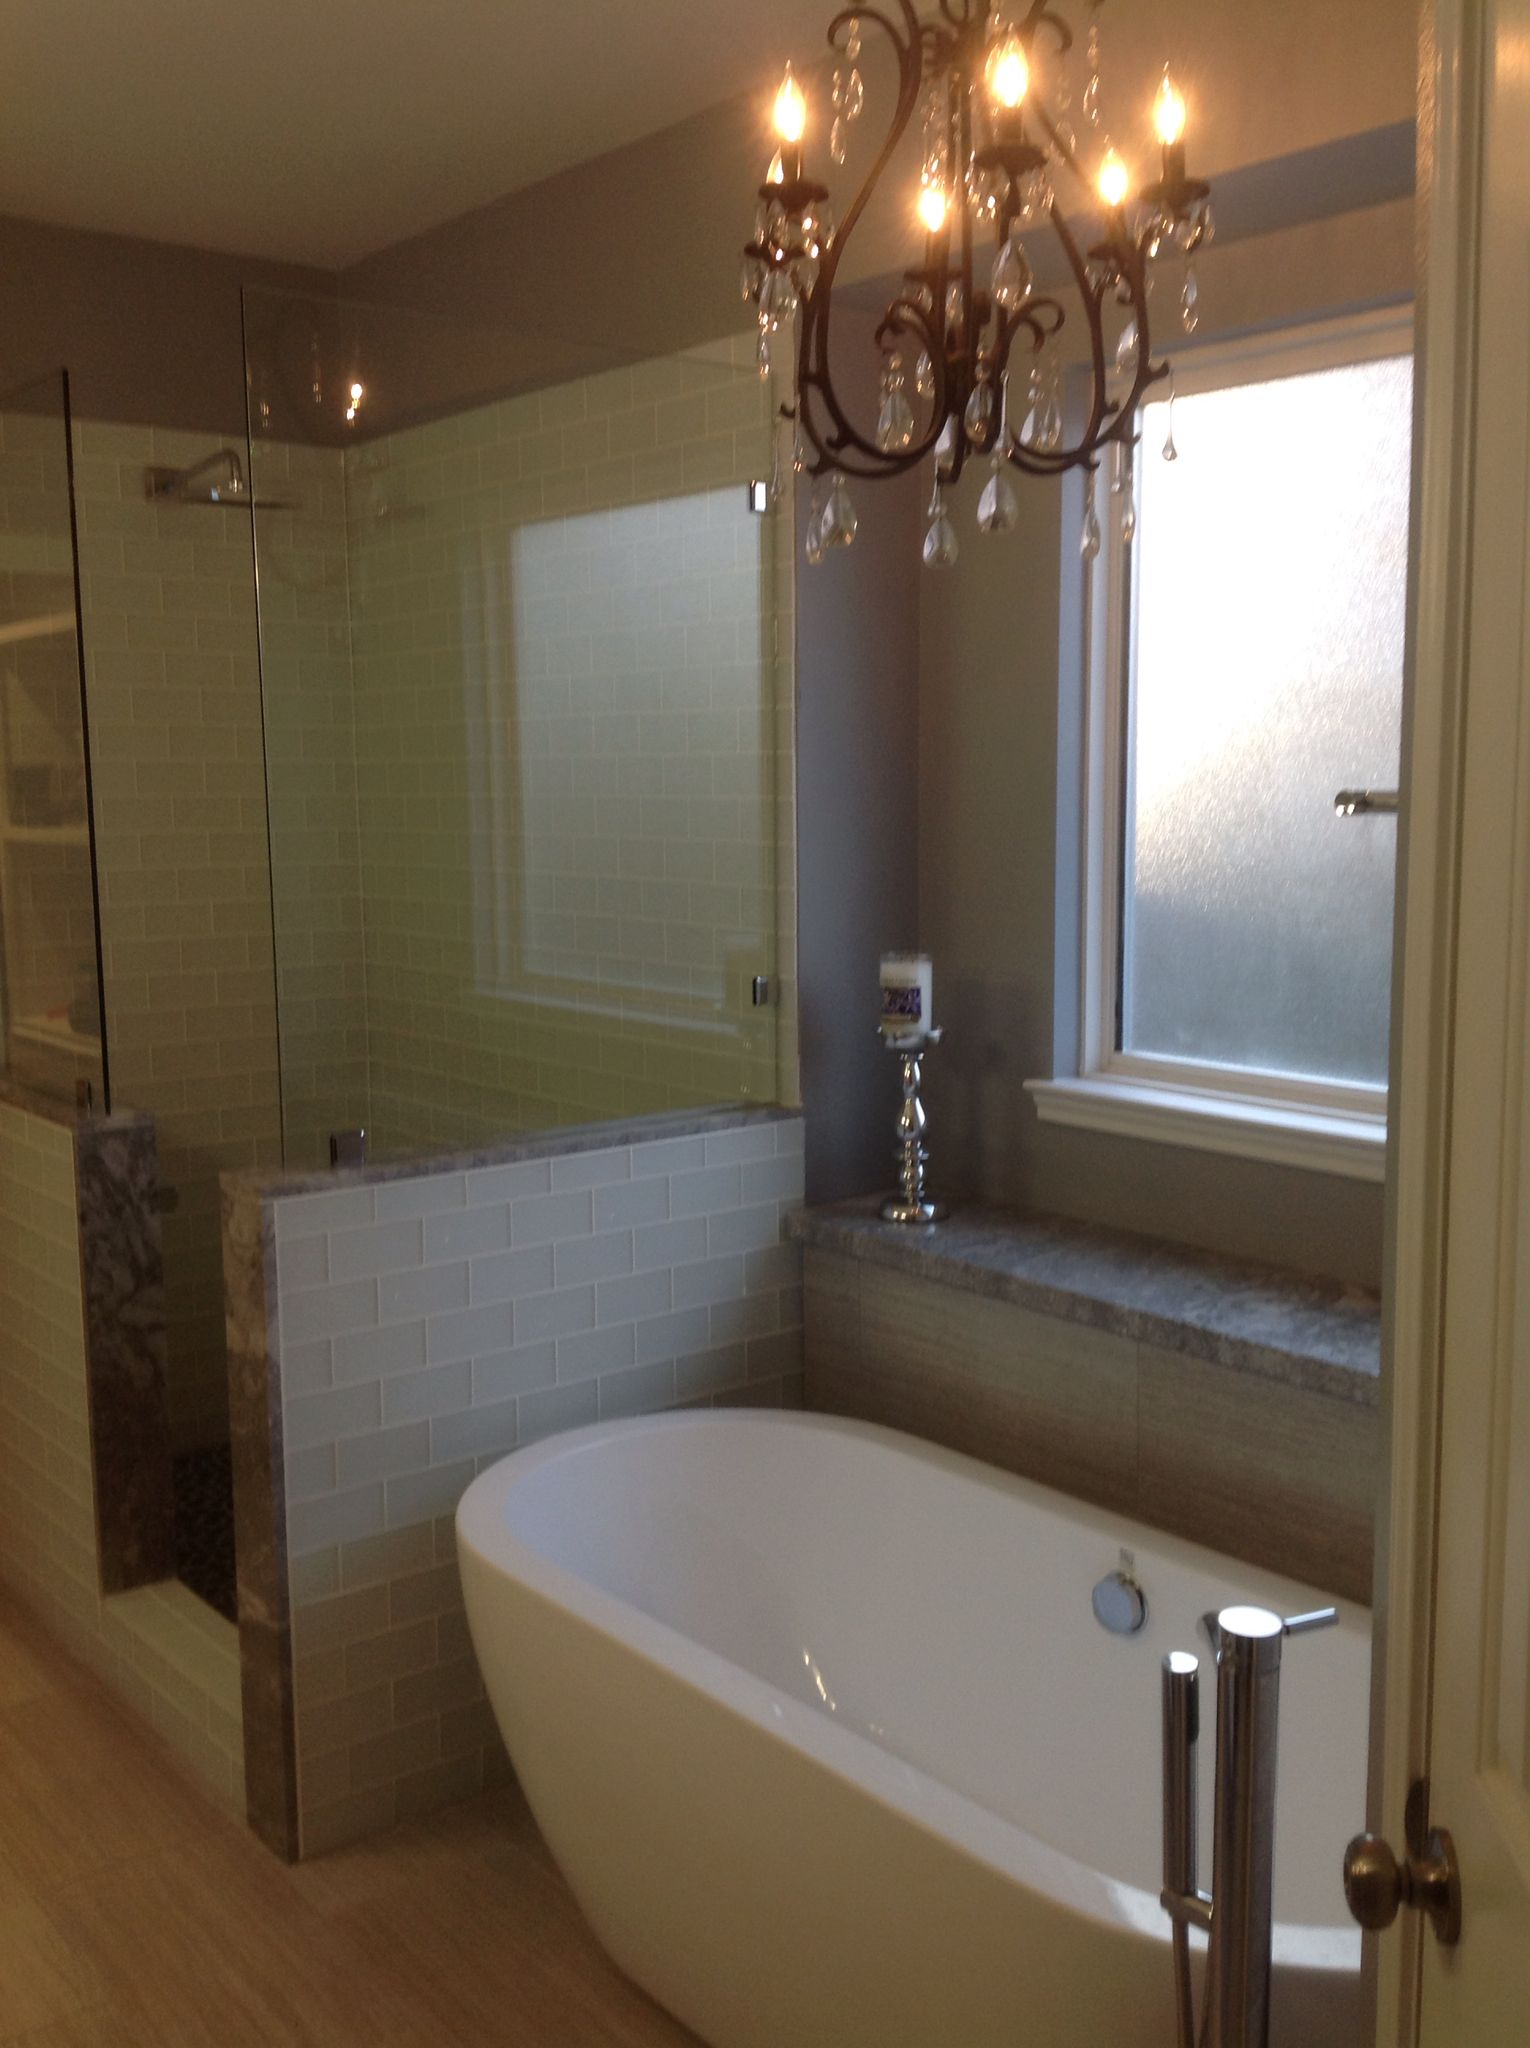 bathroom designs with freestanding tubs. Interesting Tubs Bathroom Remodel With Freestanding Tub Frosted Glass Shower Tile Spa Rock  Floor Rain Head Grey Sand White Color Palate In Designs With Freestanding Tubs